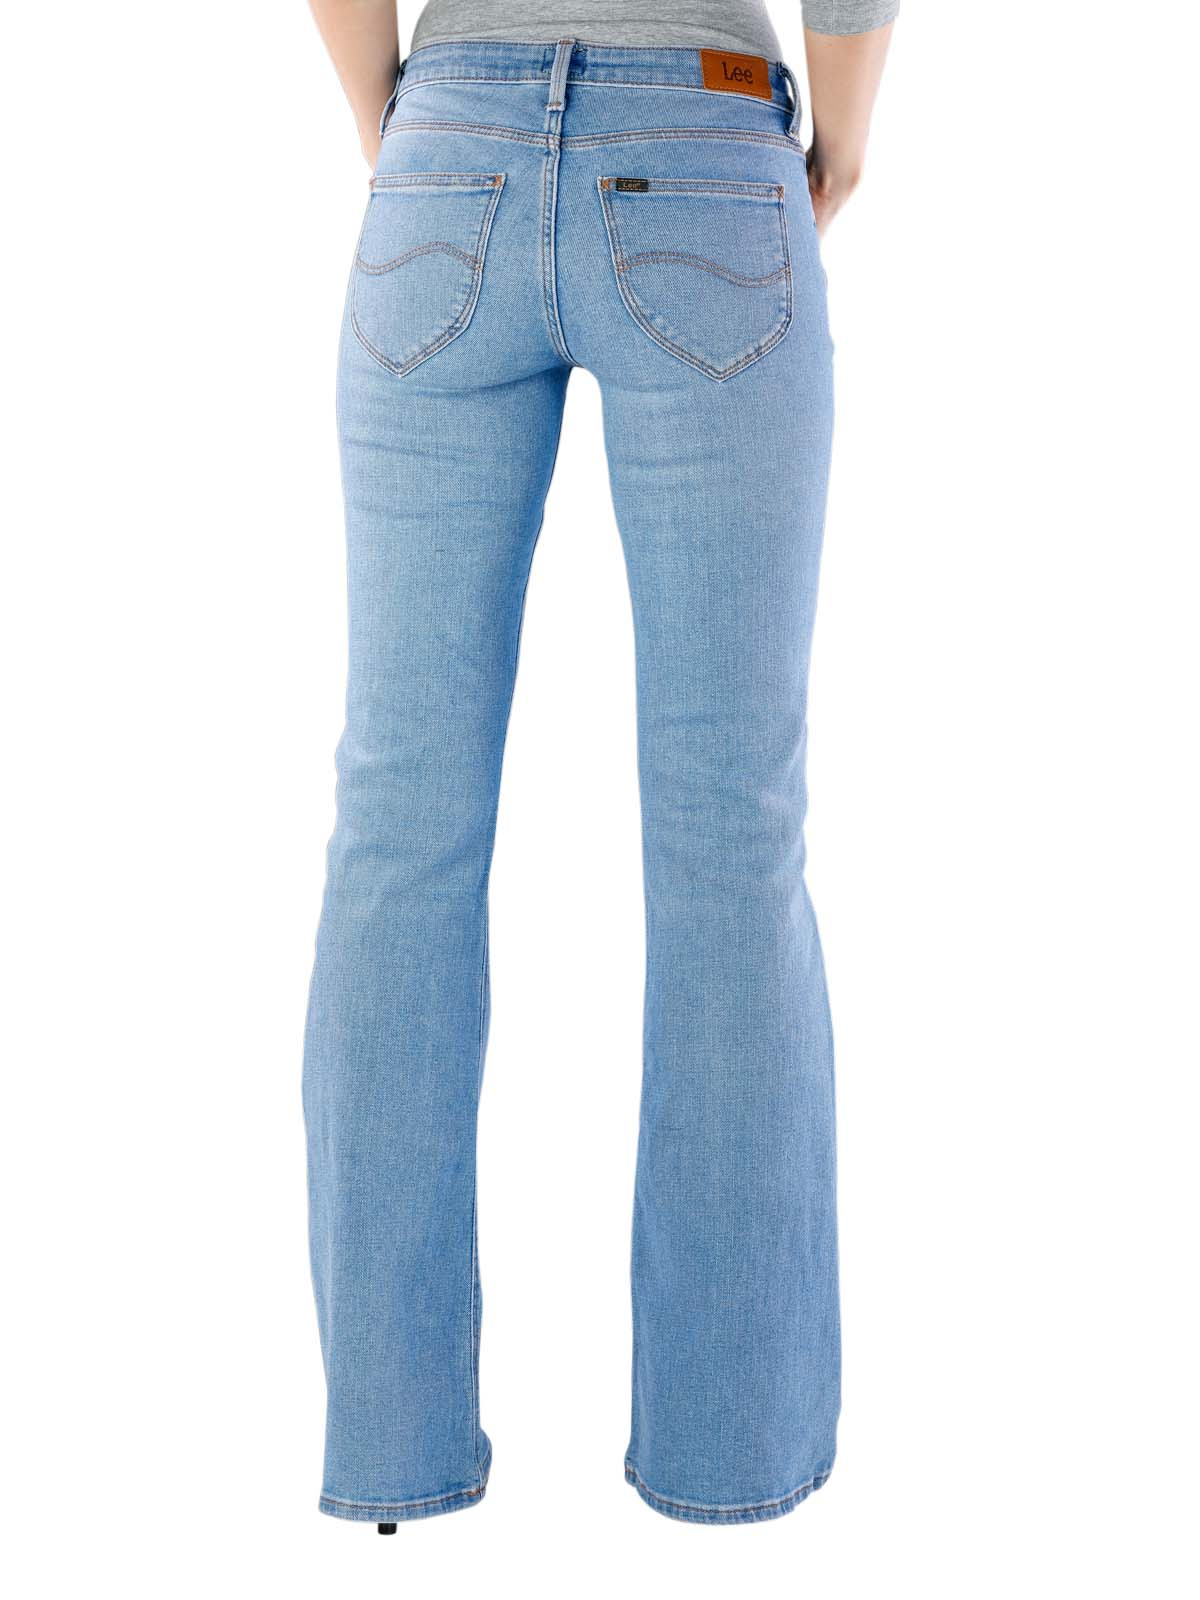 Lee Chaffee Pants flight Lee Damen Jeans | Gratis Lieferung